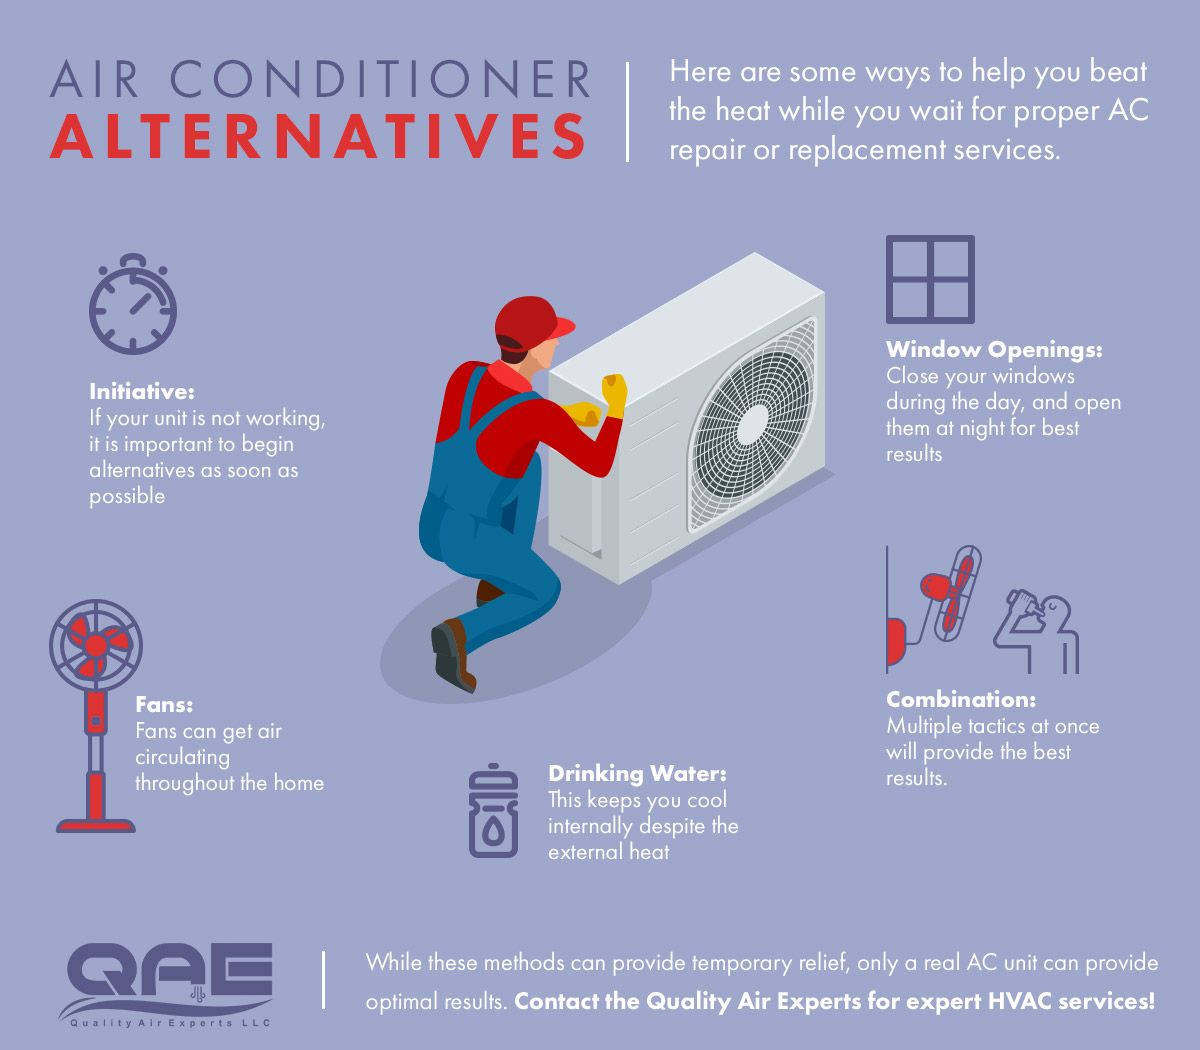 Air Conditioner Alternatives.jpg